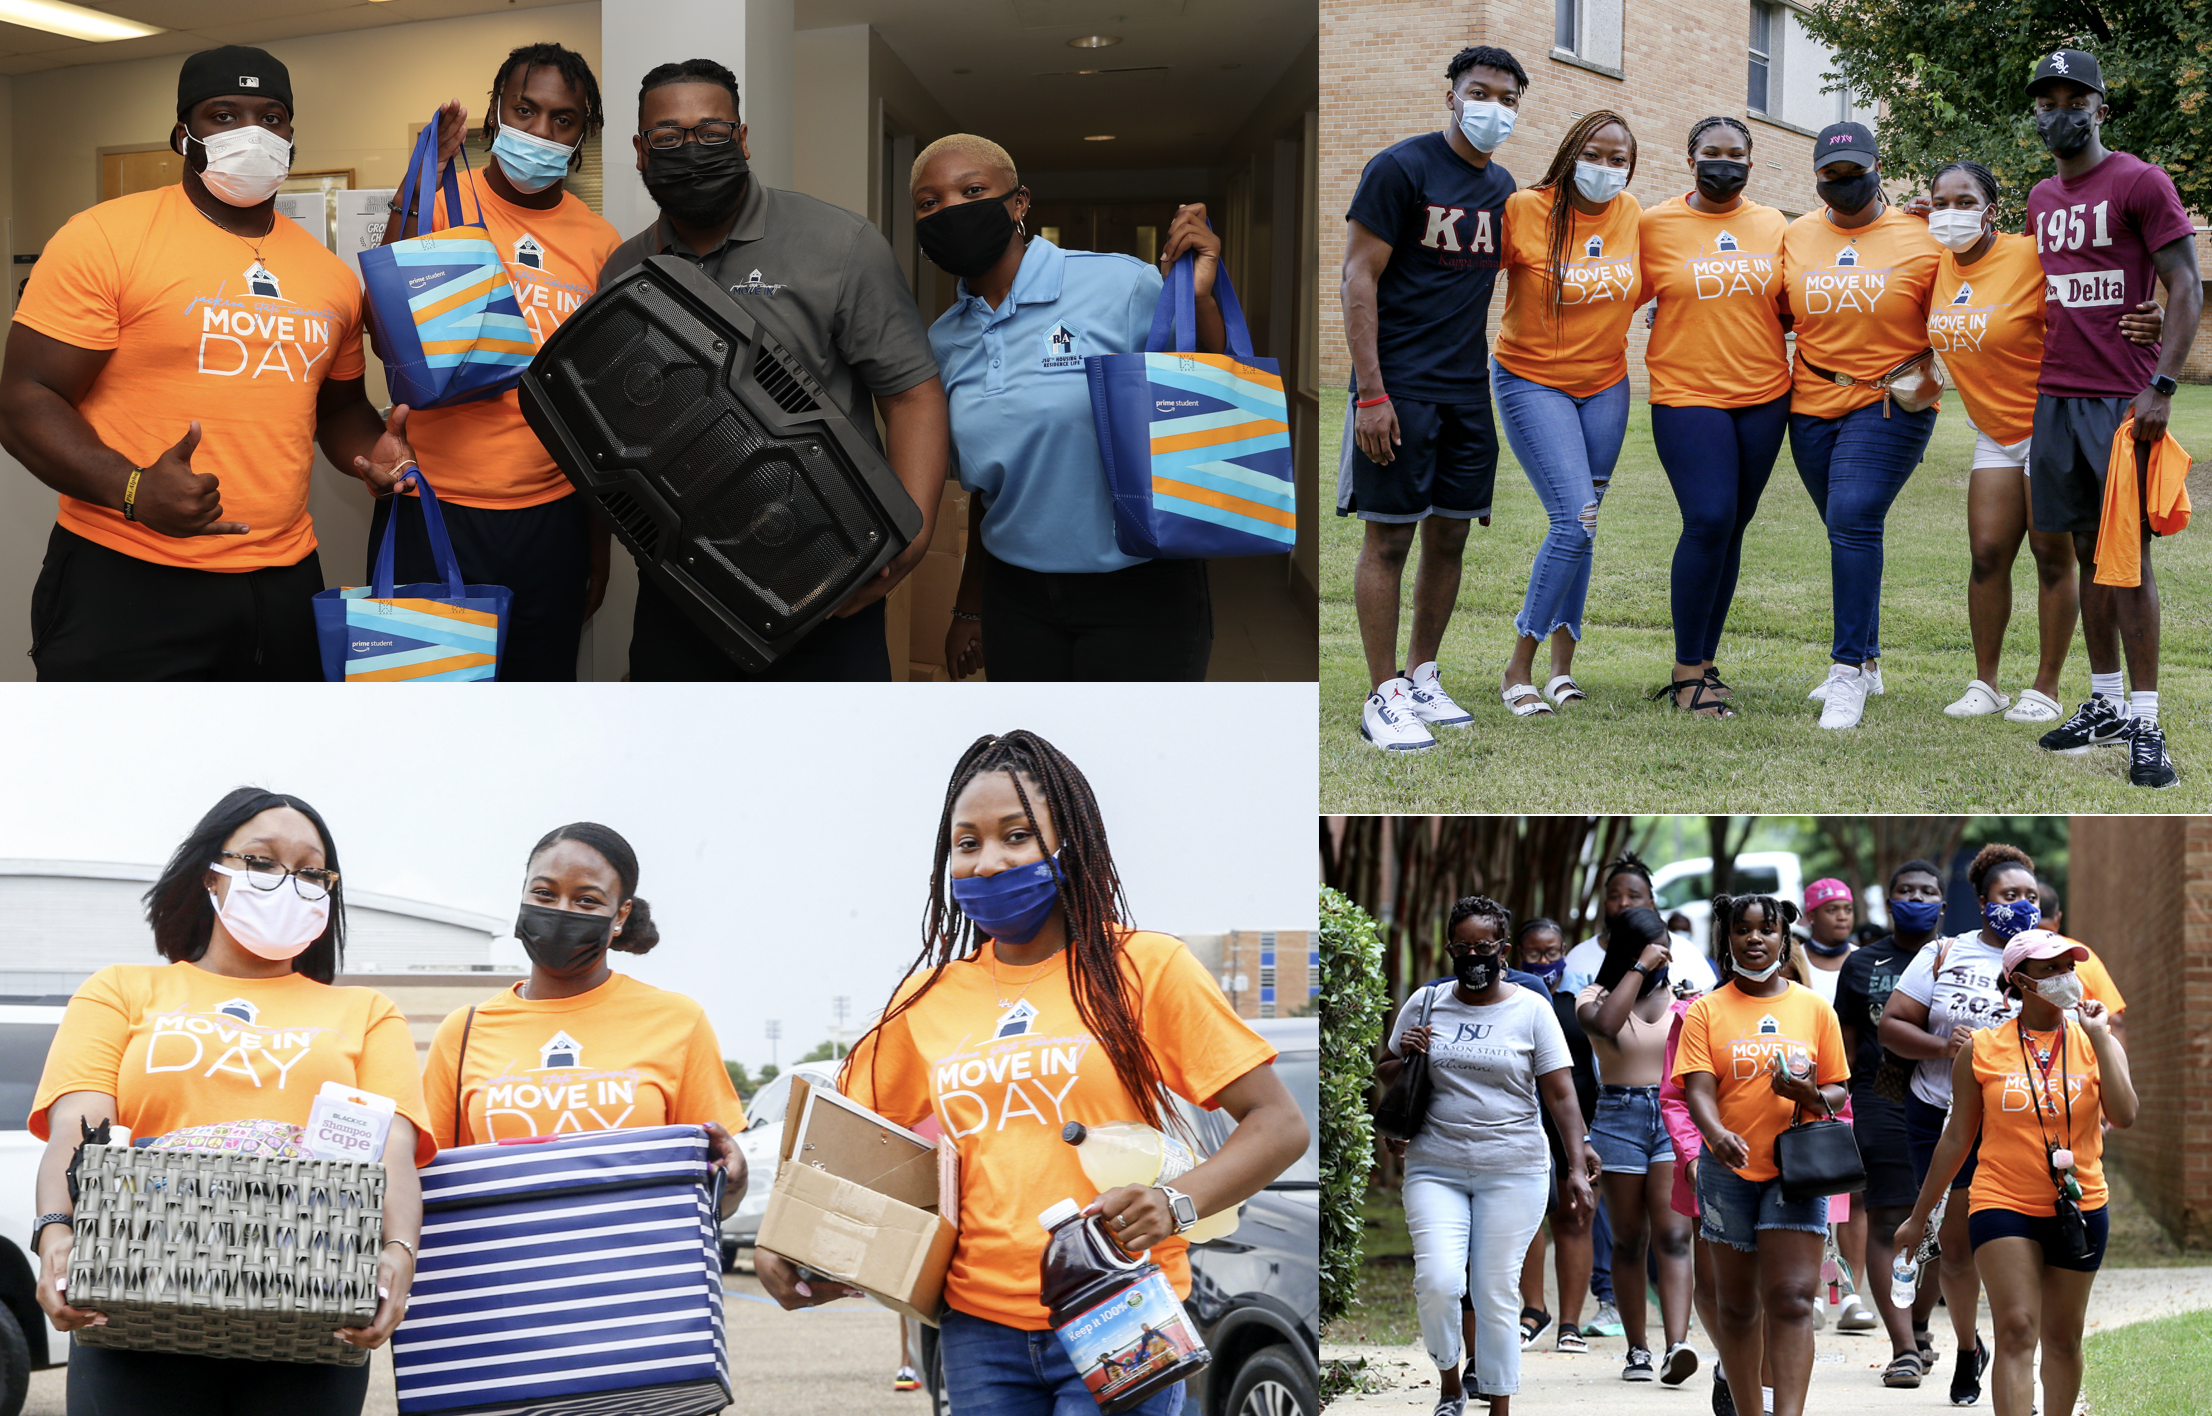 JSU Move-in Day volunteers could be easily identified by their bright, orange shirts. (Photos by Aaron Smith/JSU)